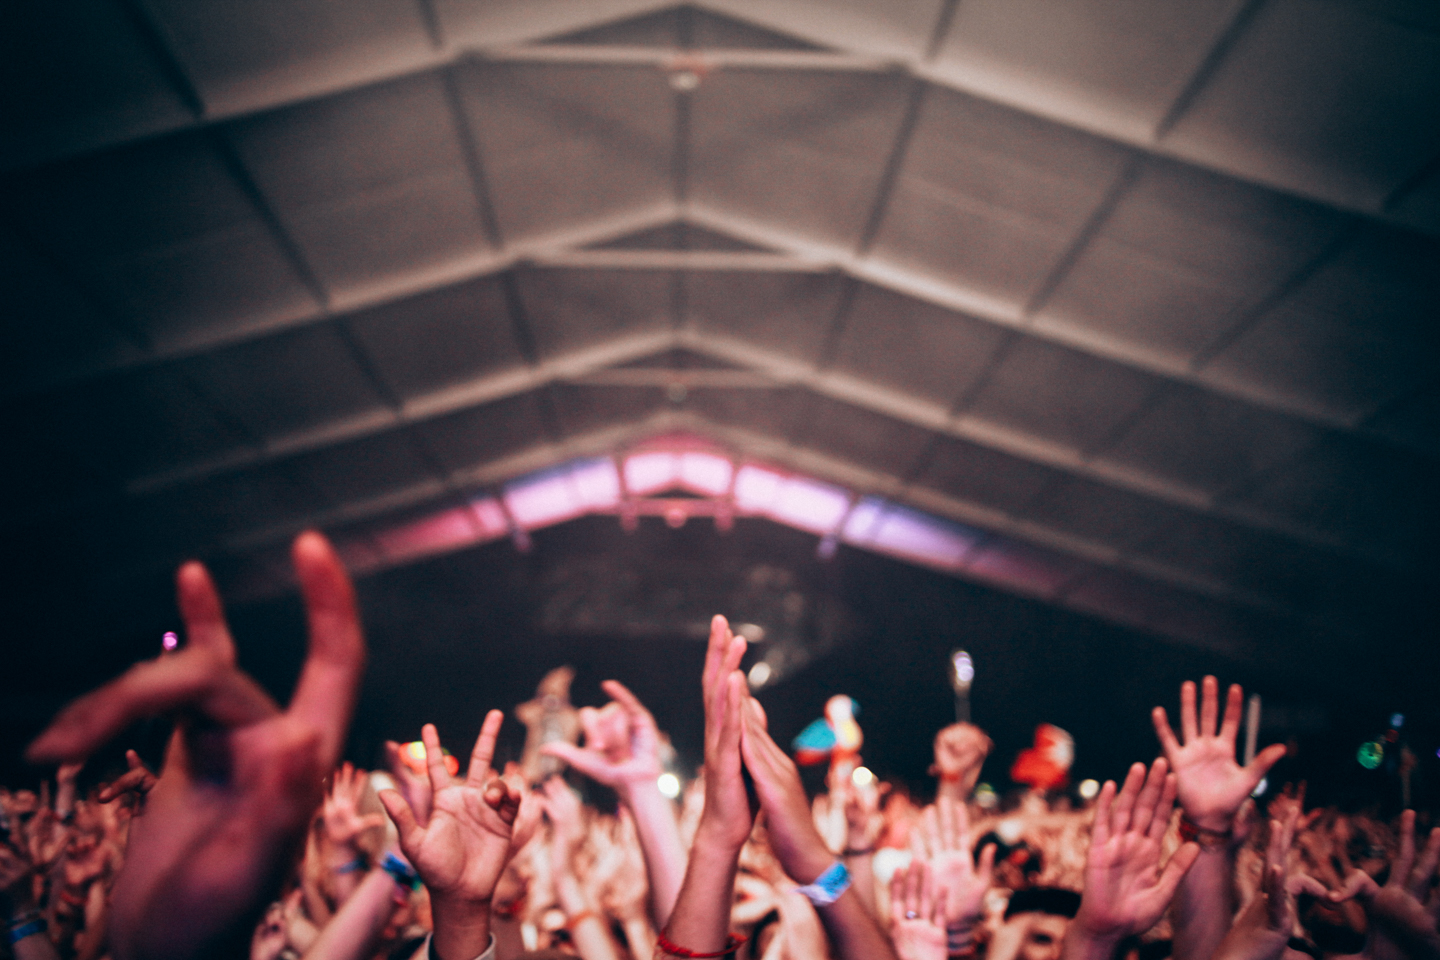 Nick-Johnson_Mr-Aesthetic_Photography_Bonnaroo-27.jpg